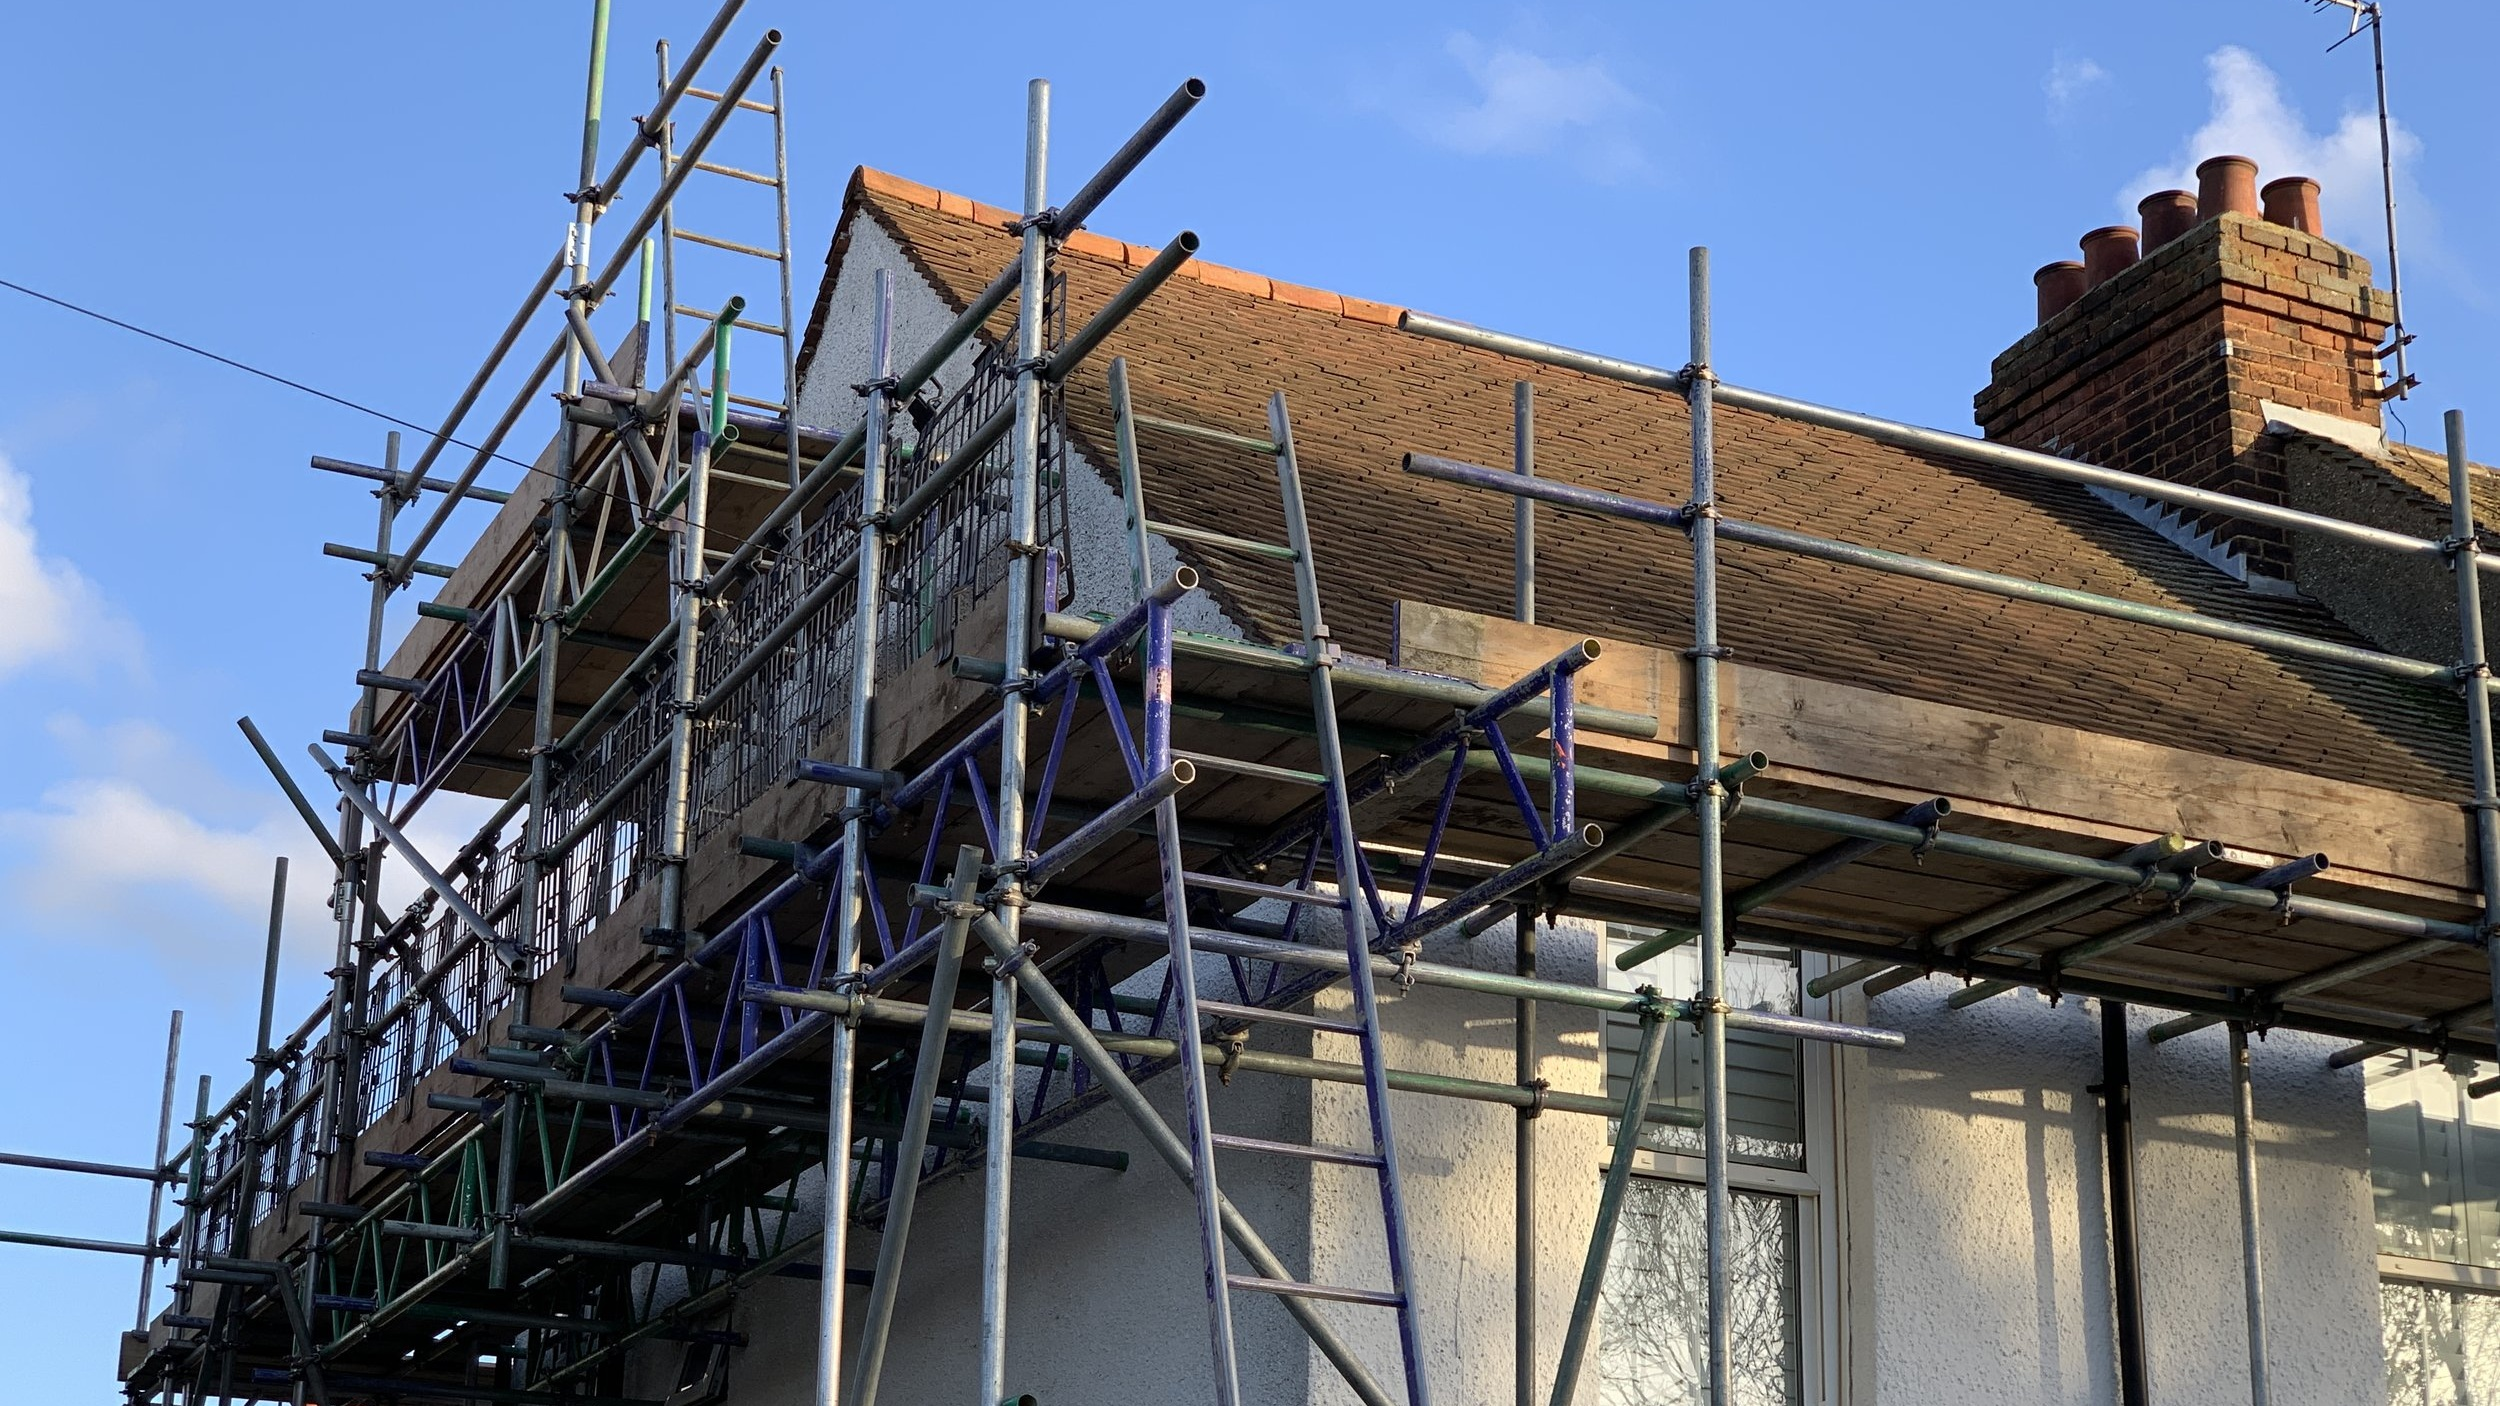 Domestic Scaffolding - We work with individual householders, local builders, maintenance companies and housing associations to cover all scaffolding and access requirements.